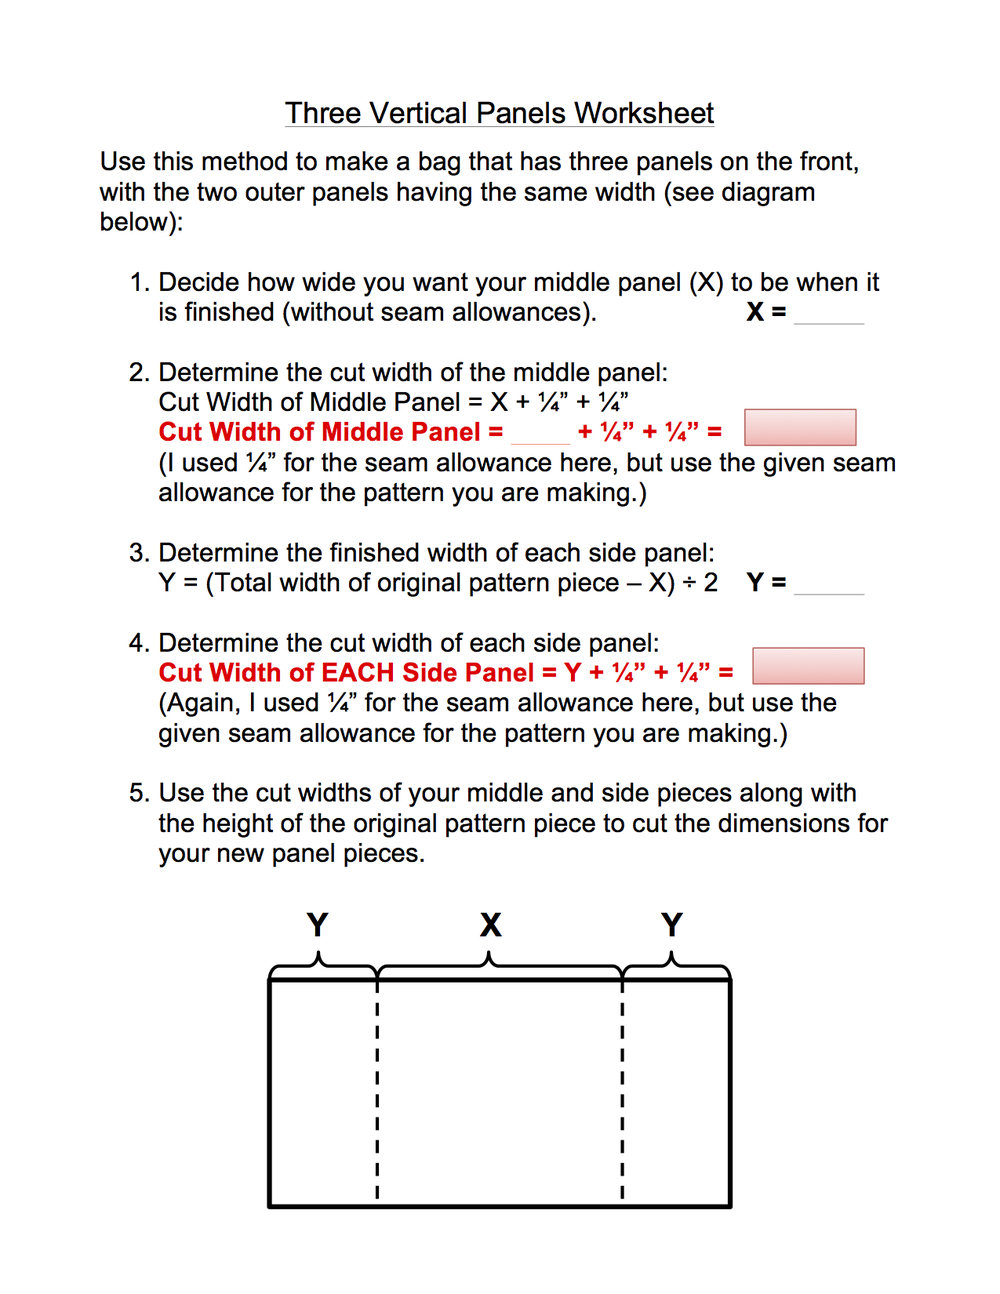 This is a picture of the worksheet, but you download it and print it by clicking on the link above this picture.